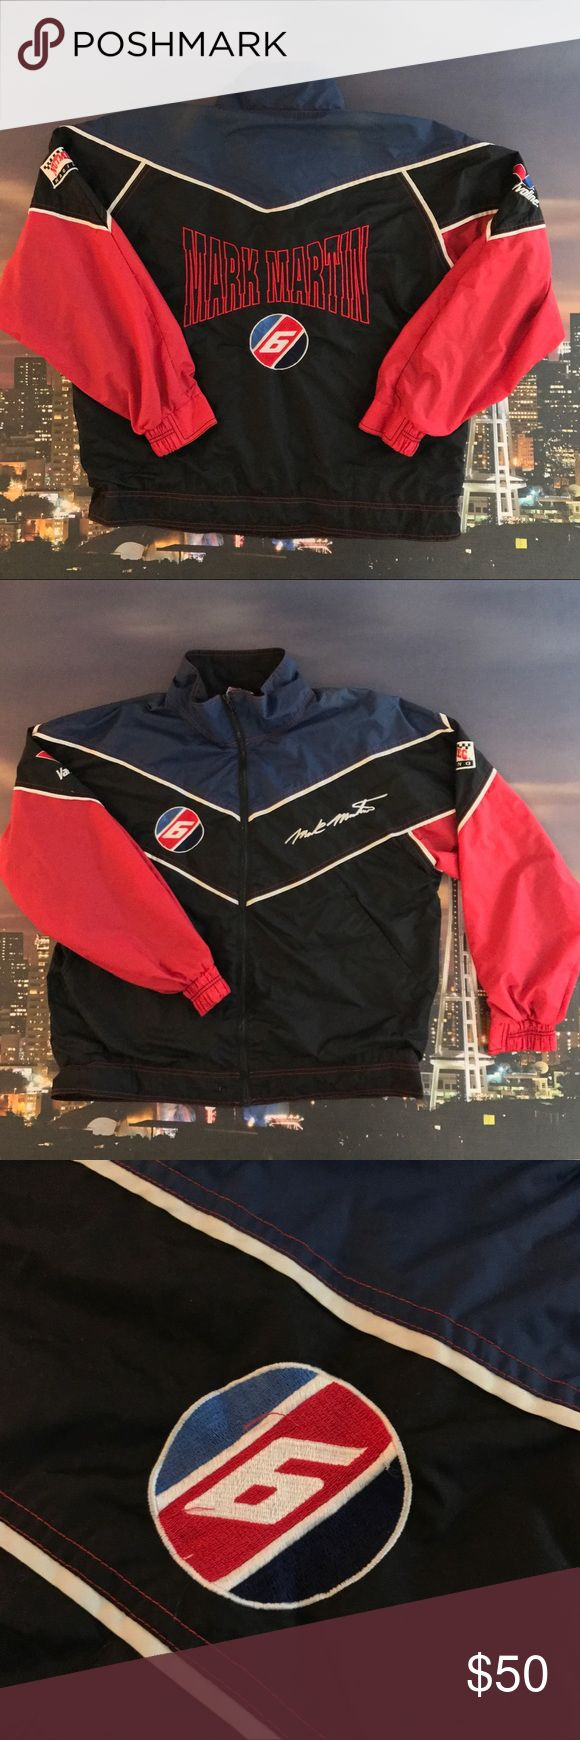 Vintage Mark Martin Iconic Racing Jacket Authentic and a rare collectors item Jackets & Coats Lightweight & Shirt Jackets